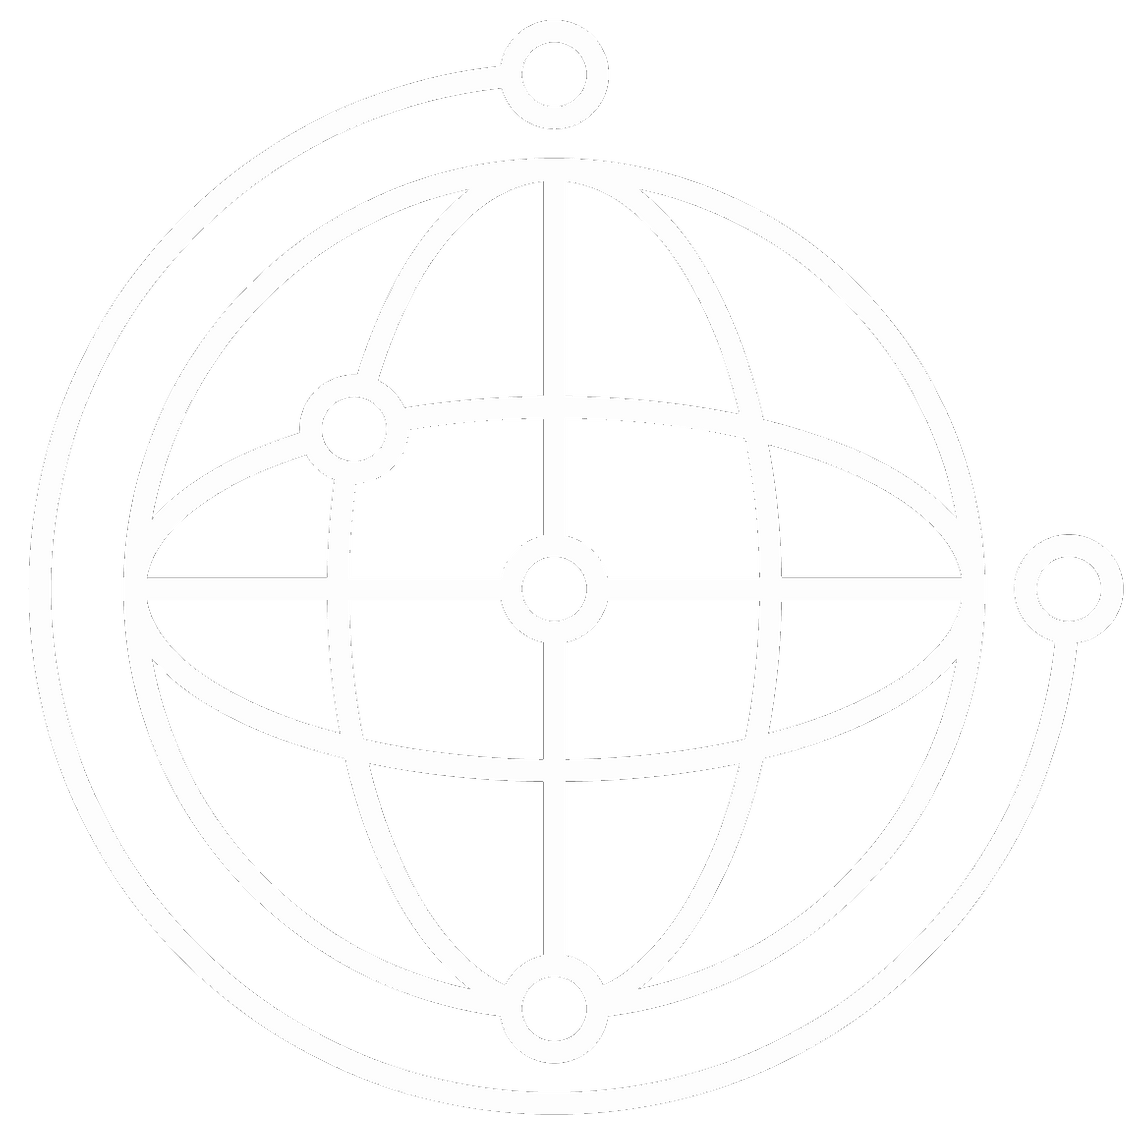 Unified network icon vector